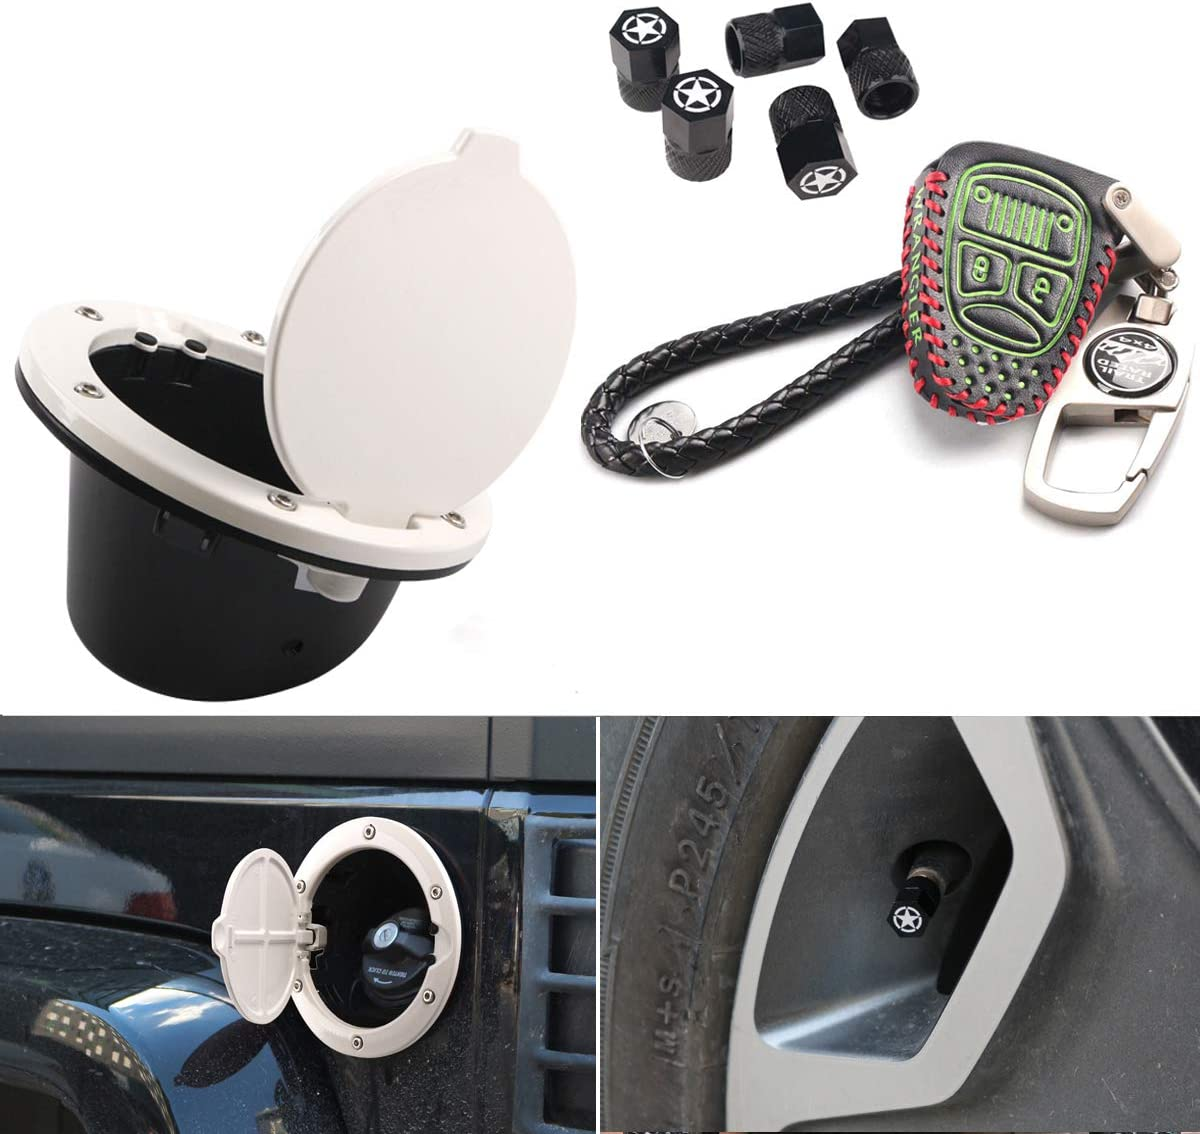 White Gas Max 54% OFF Cap Max 54% OFF Cover + Green Leather Fob Control Key Remote